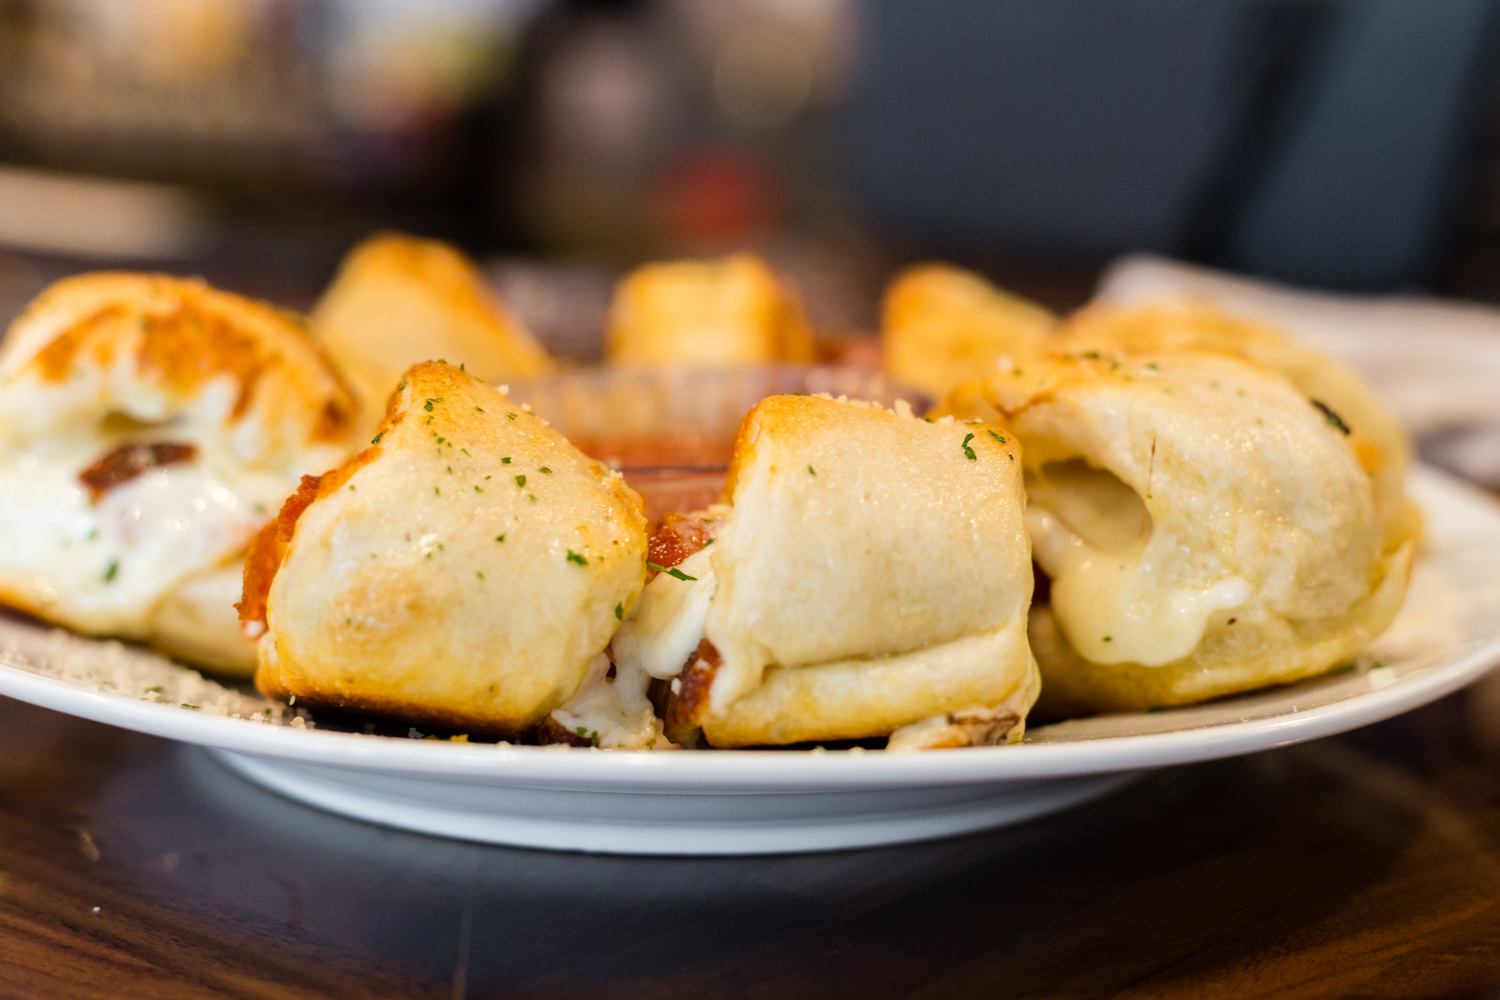 Mozzarella rolls at Windy City Pizza & Pub